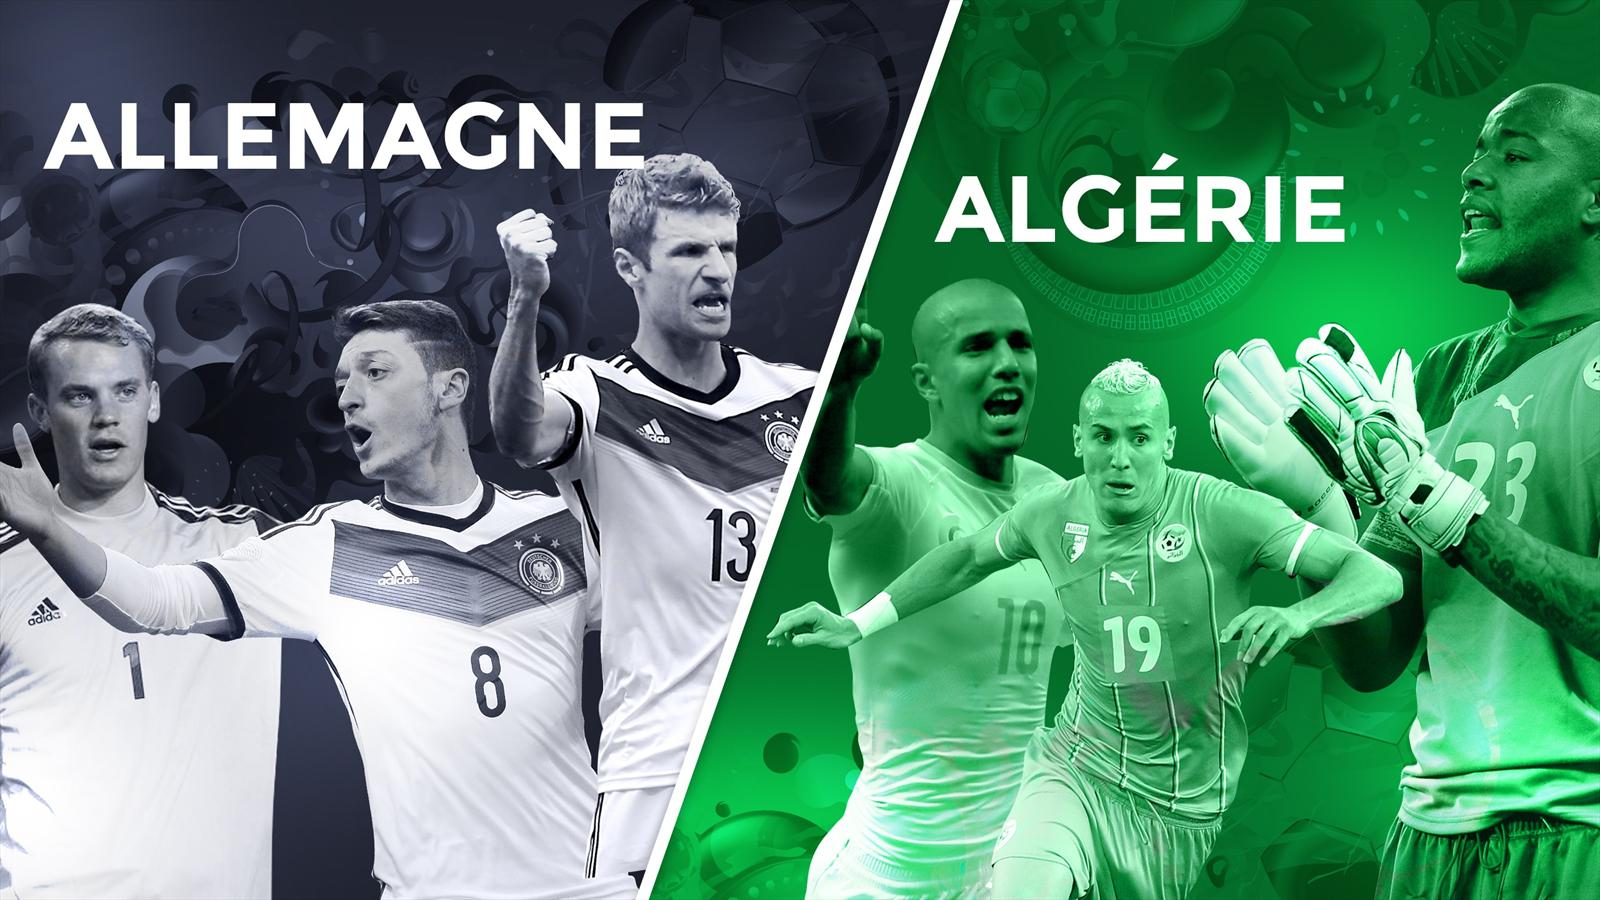 Match Algérie - Allemagne en direct live streaming